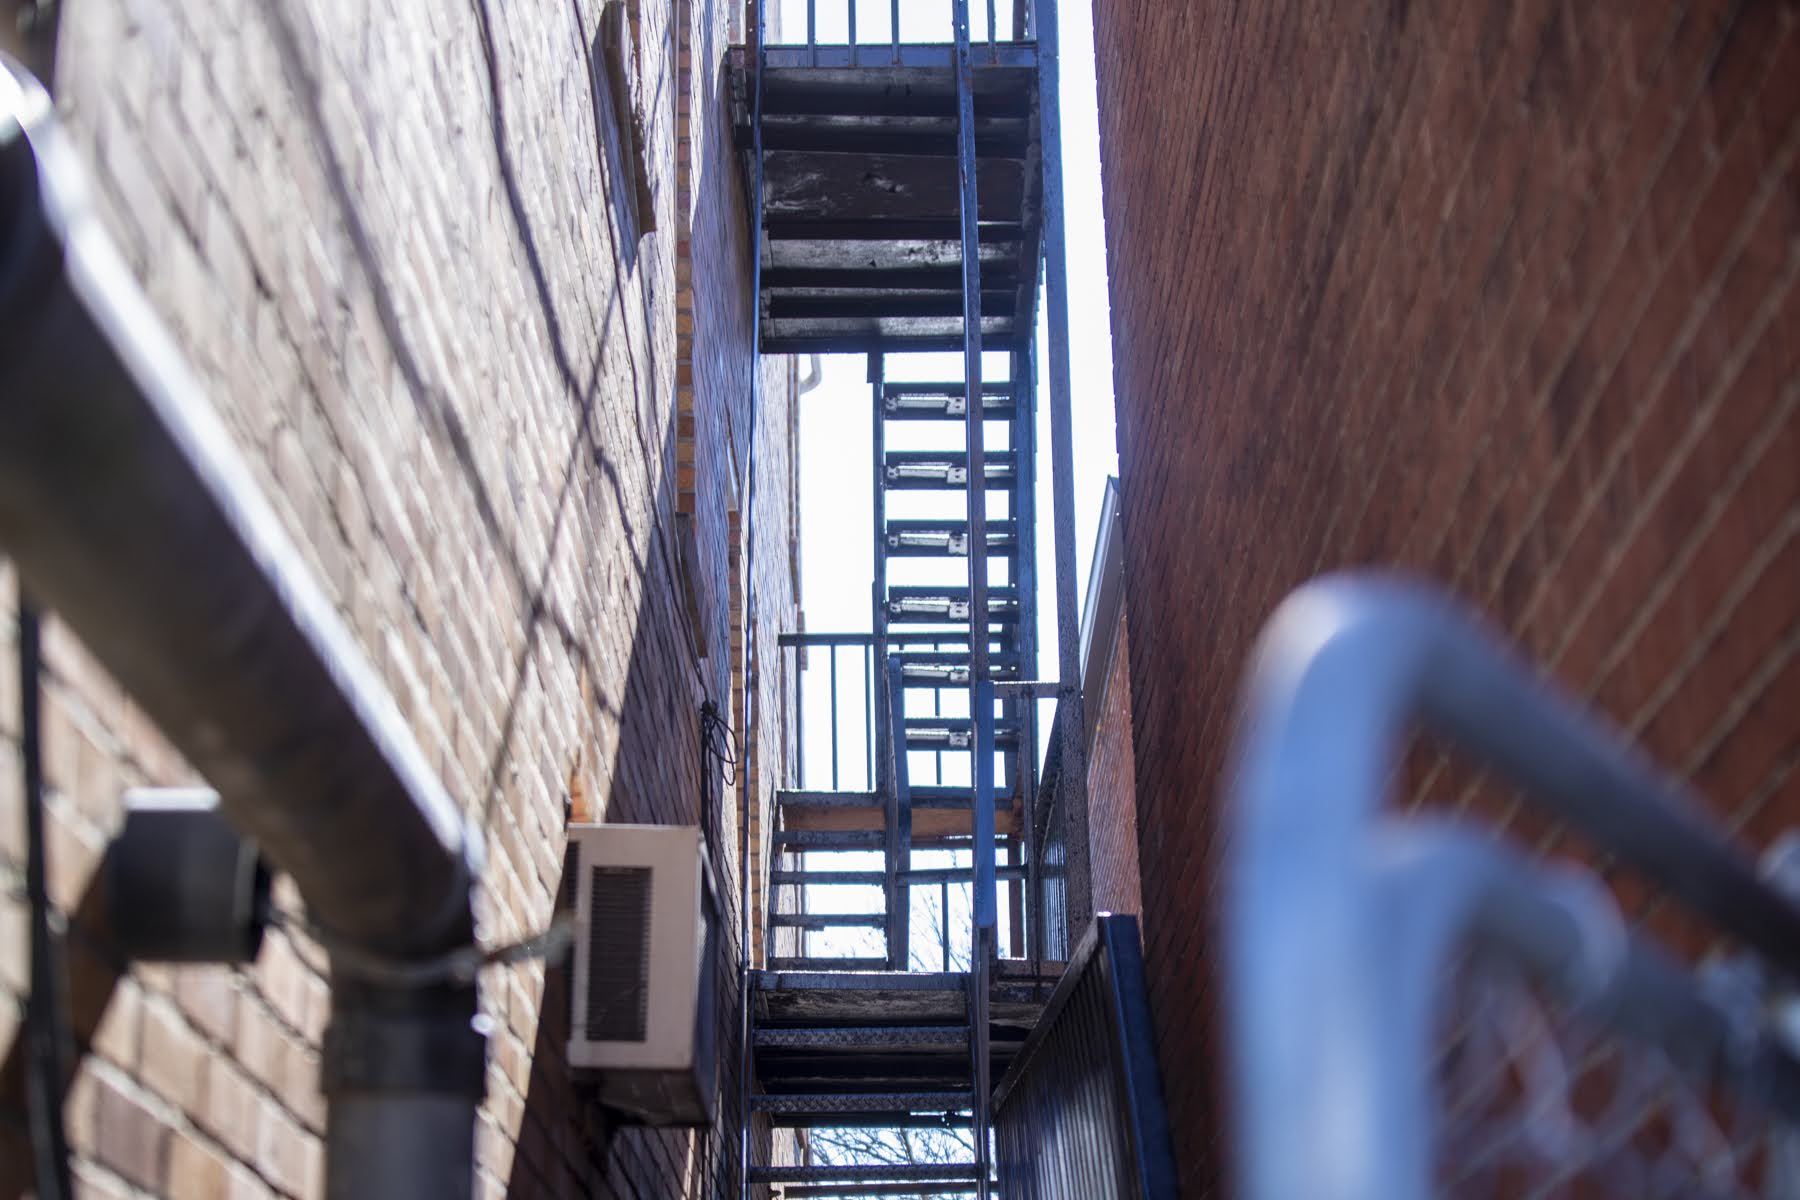 Failure of this fire escape to pass an Avalon Borough inspection led to a payment stoppage by the Allegheny County Housing Authority, which in turn prompted Mary Ellen Barber's landlord to issue its first notice telling her to move out. (Photo by Jay Manning/PublicSource)